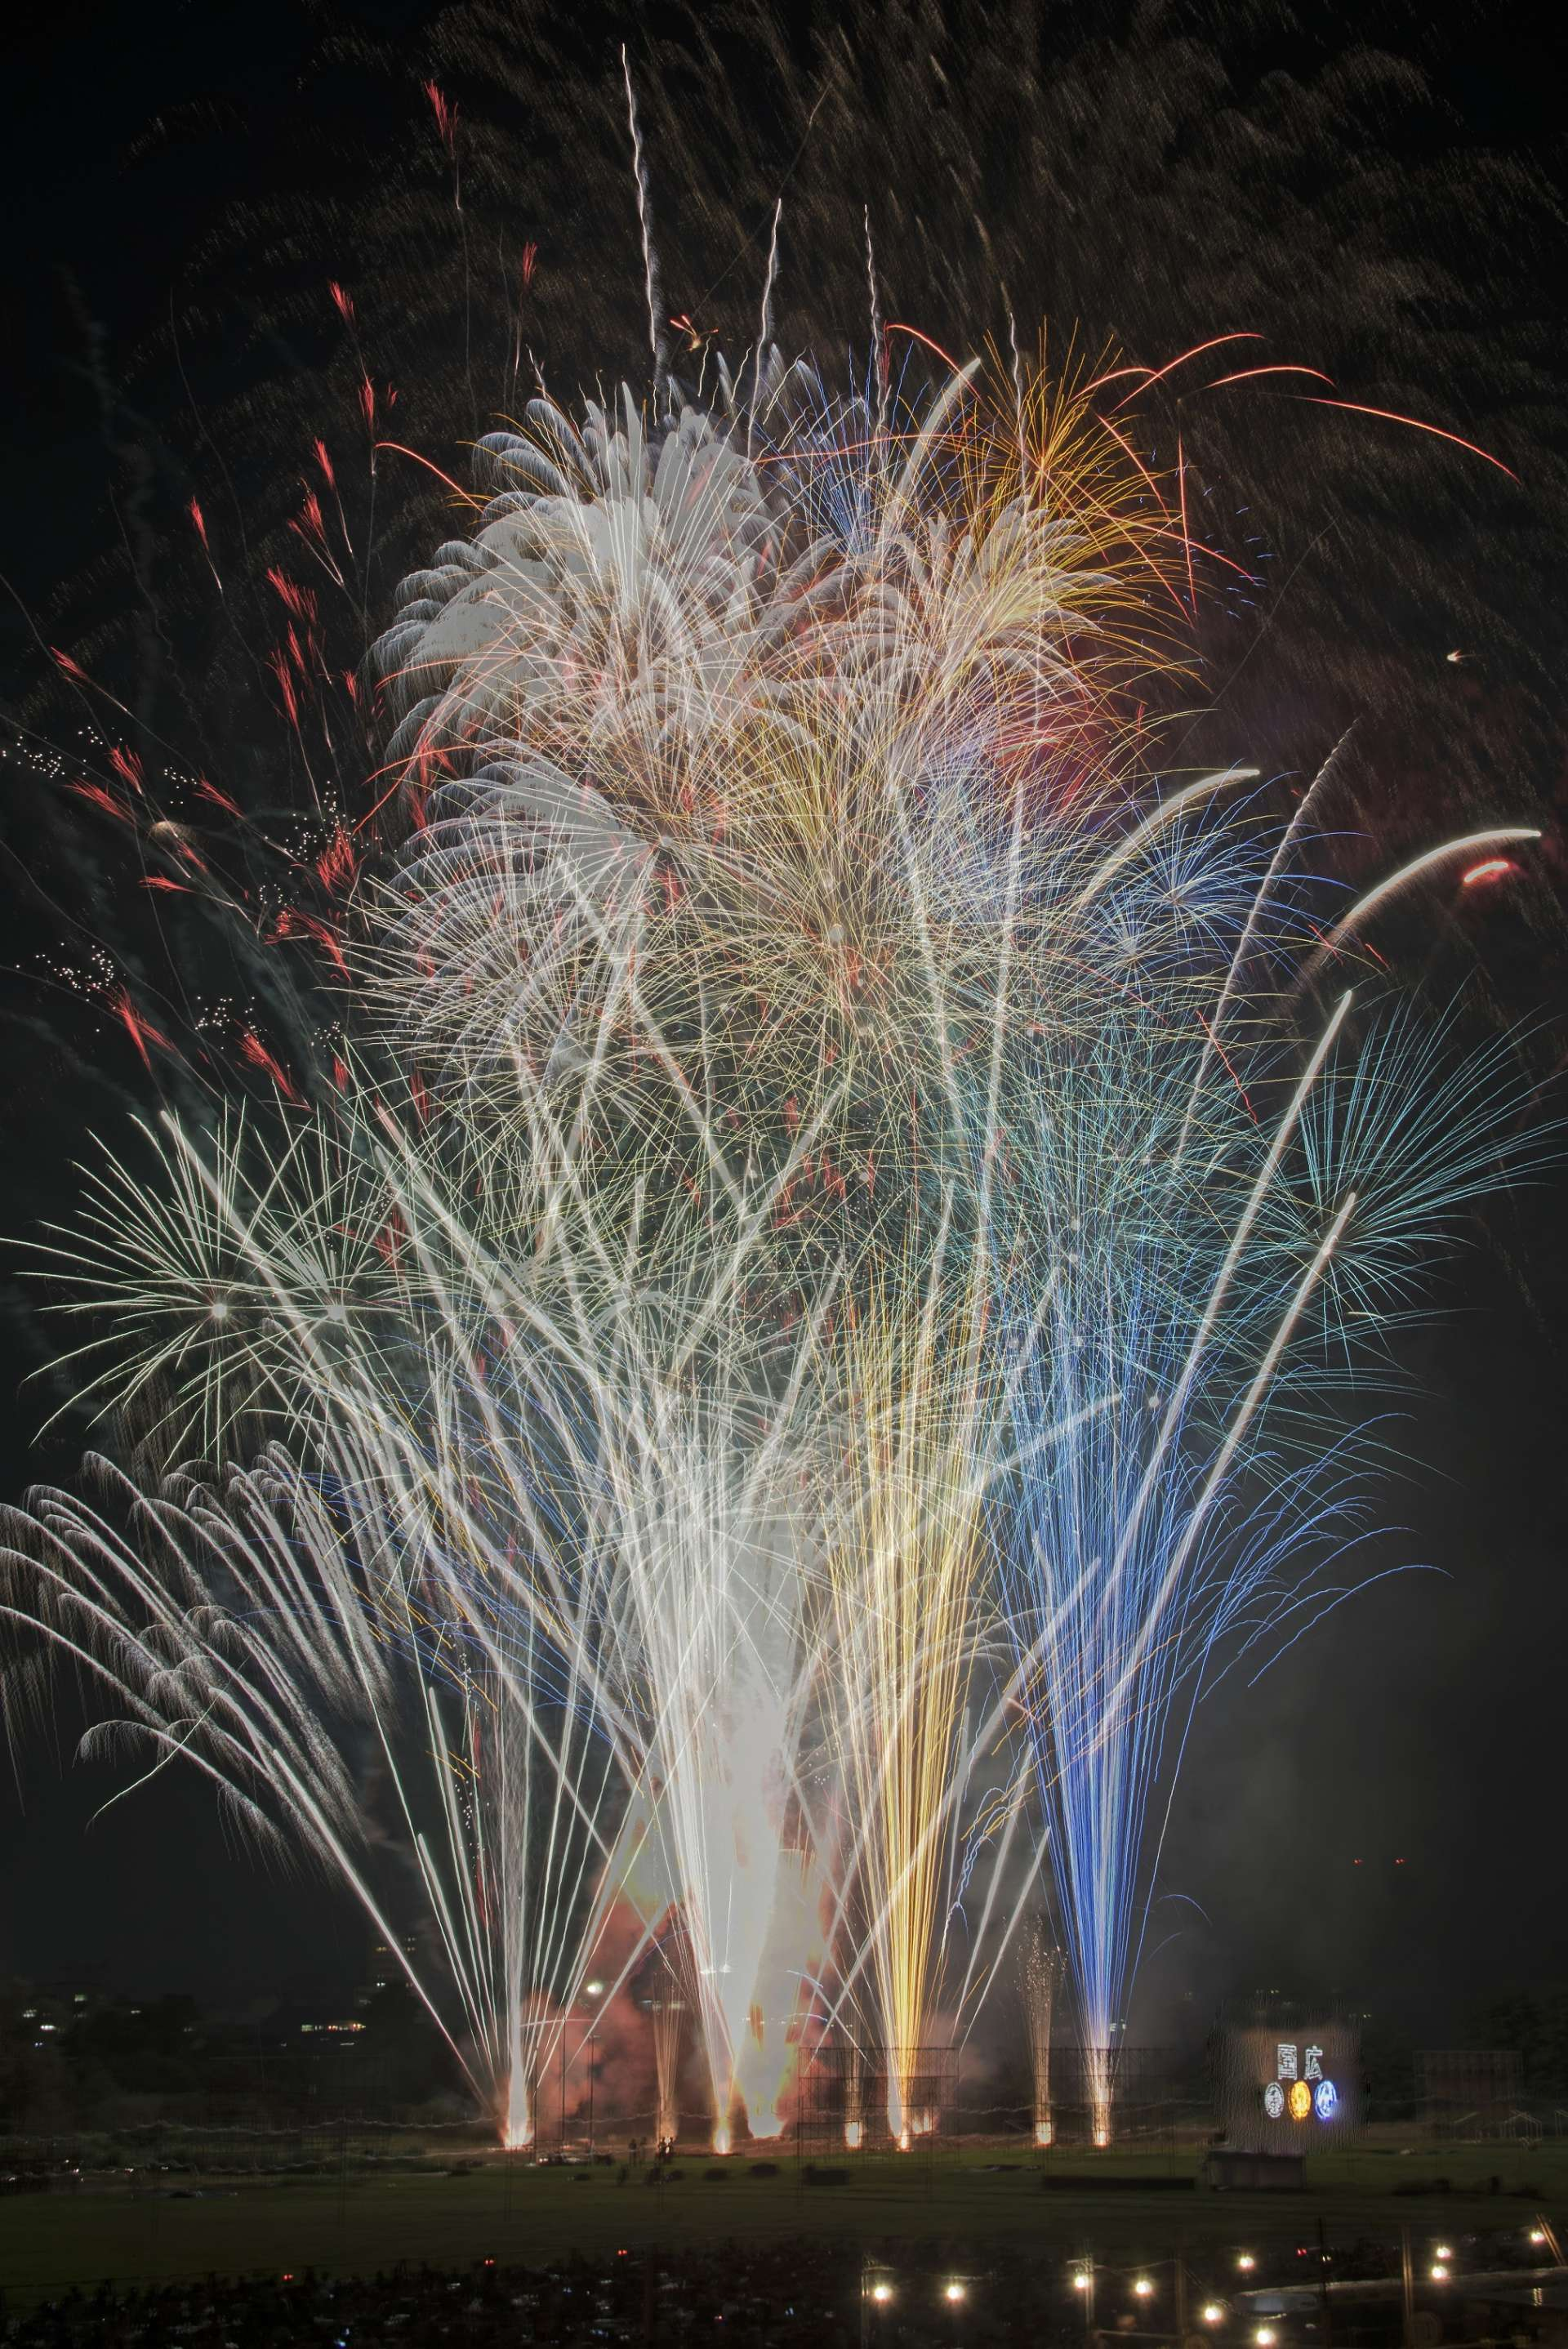 Various elaborate fireworks are launched to the non-stop astonishment of the audience.